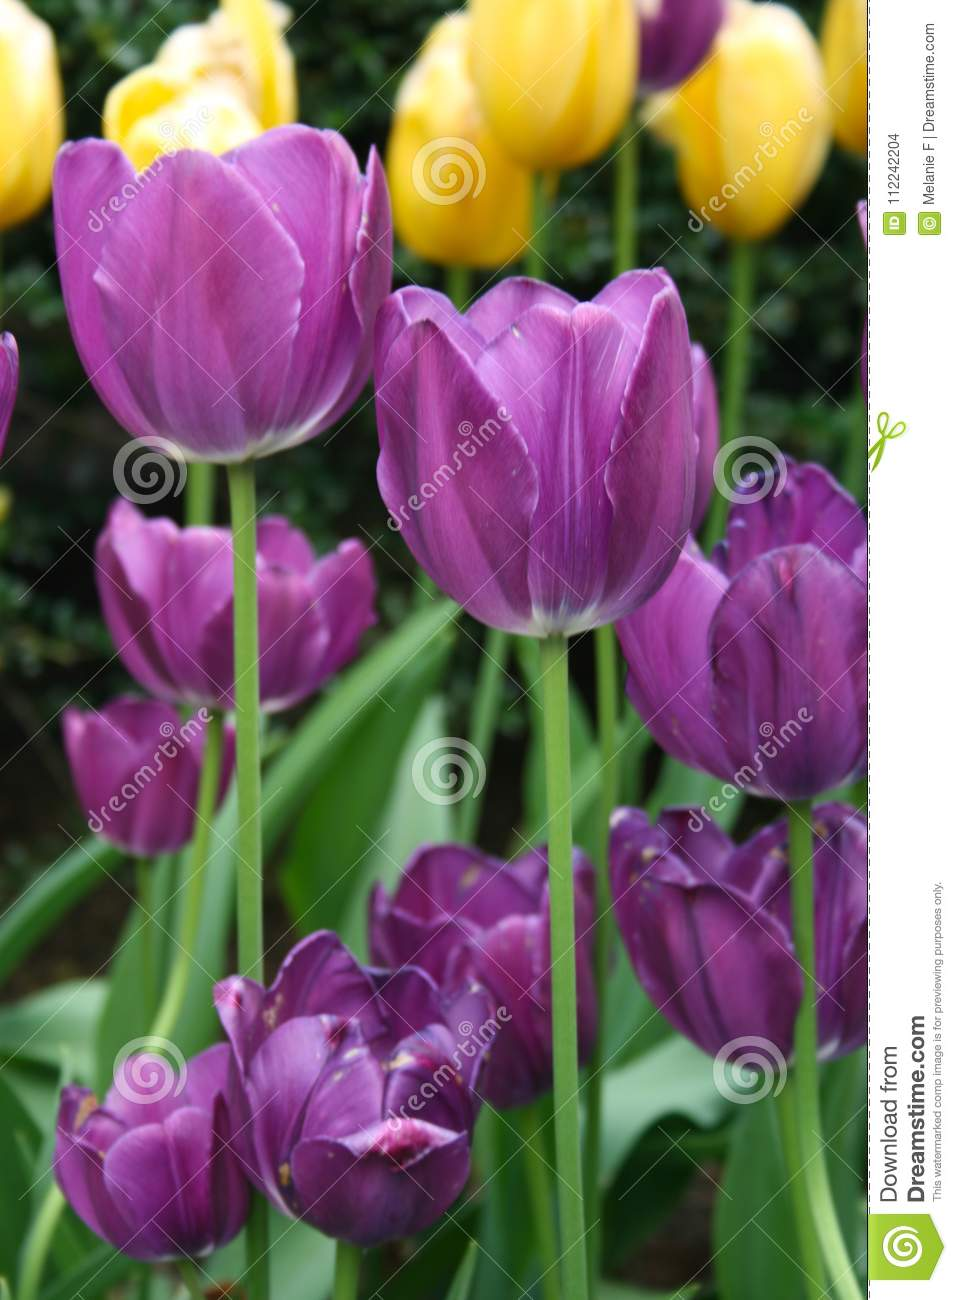 Close Up Of Long Stem Purple Tulips With Yellow Tulips In The